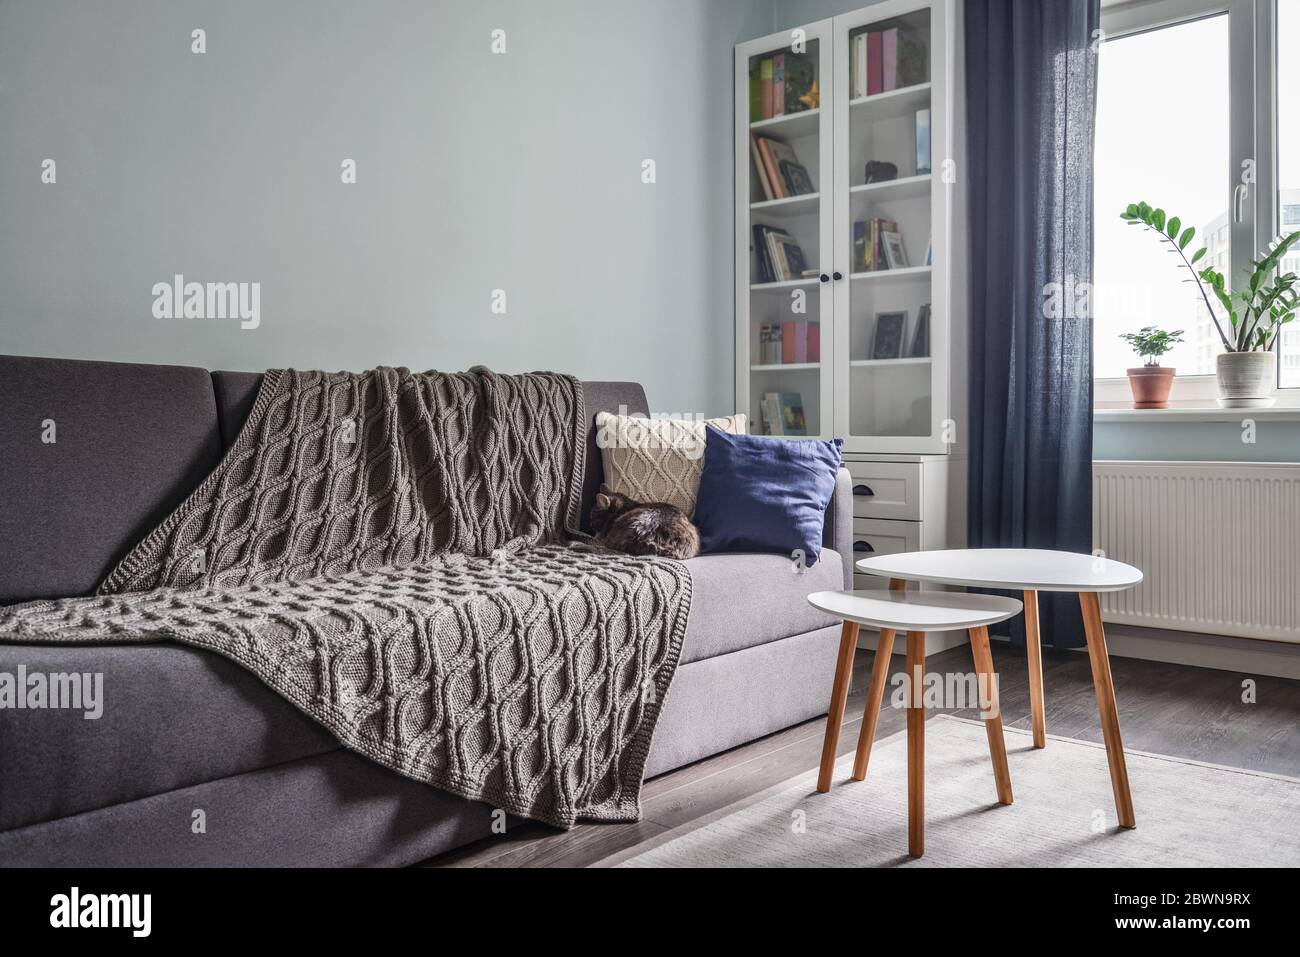 Light Cozy Teen Room With White Bookcases Grey Sofa And Blue Walls Stock Photo Alamy